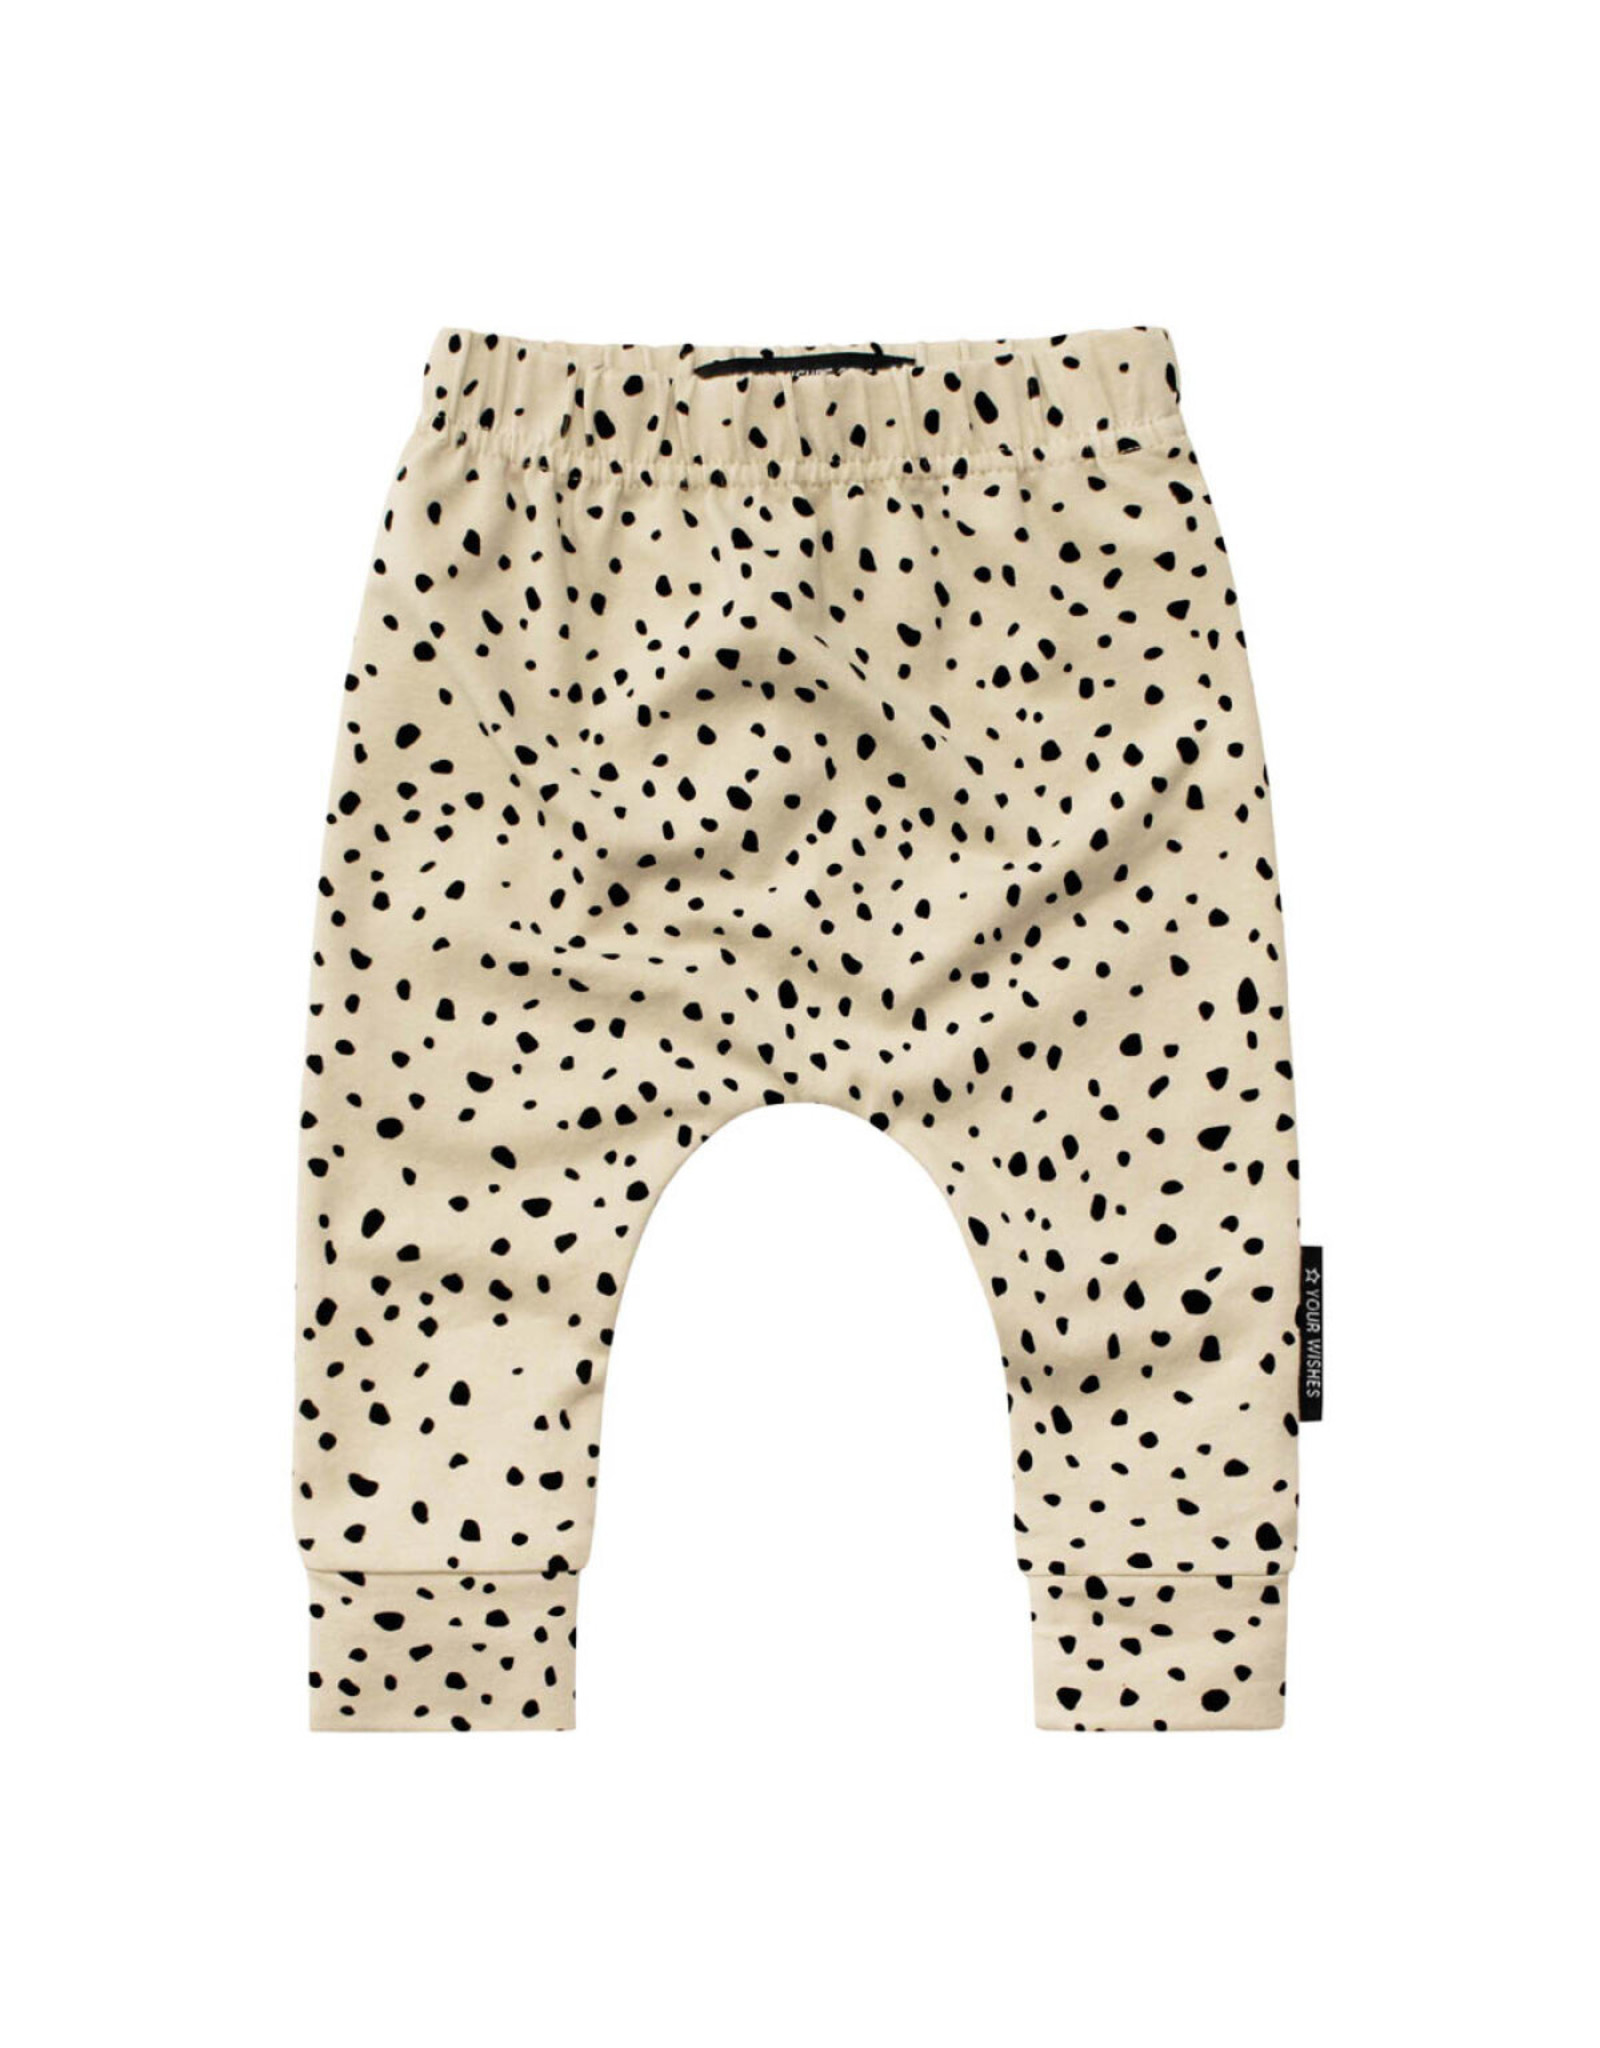 Your Wishes Pant Cheetah Nude